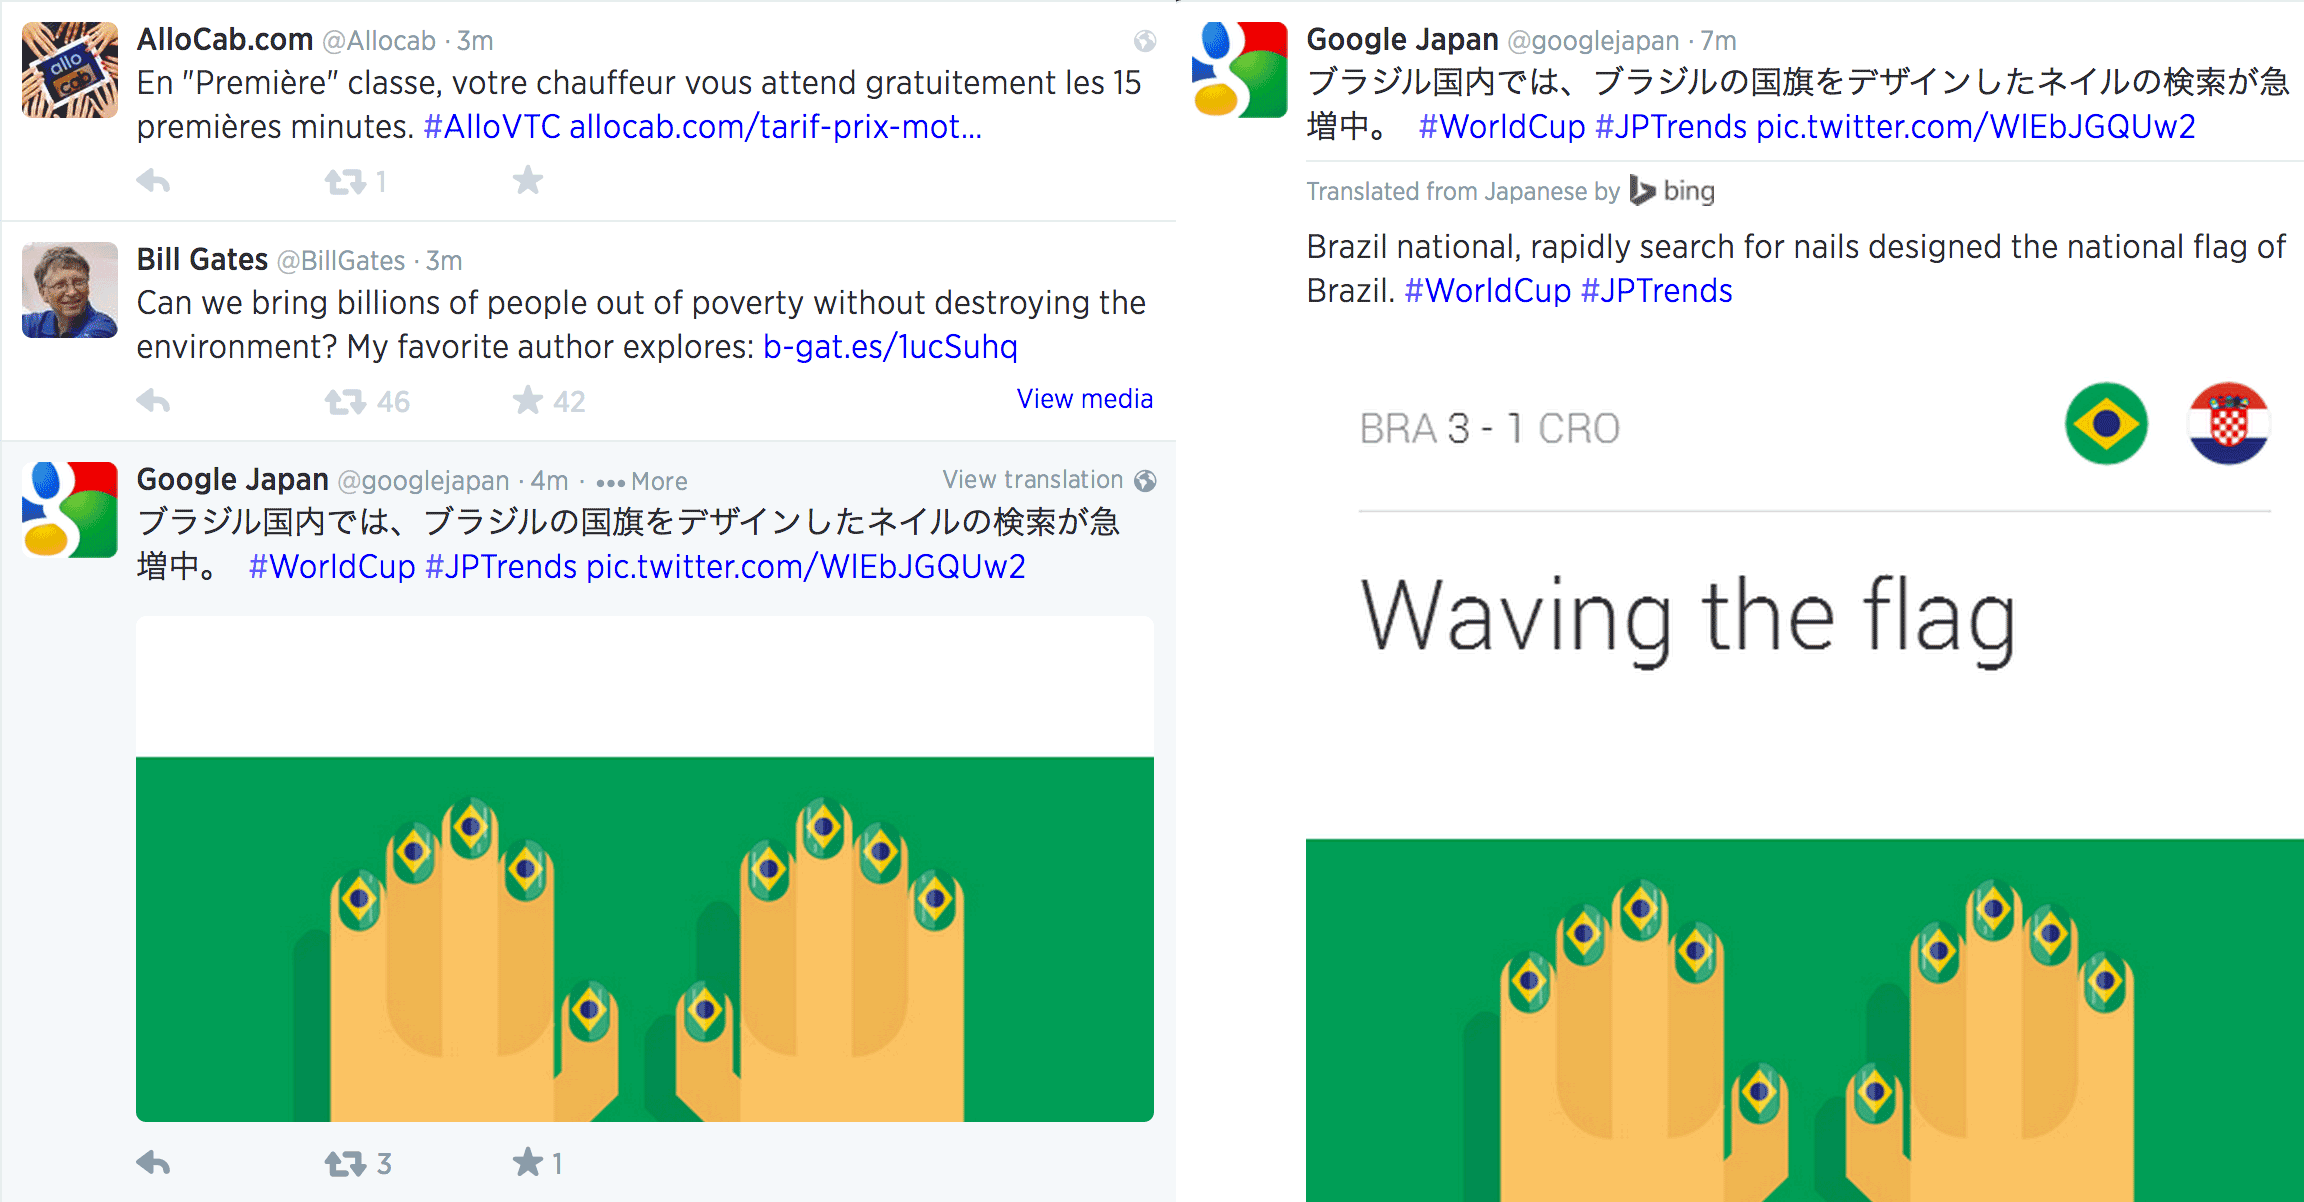 Twitter now shows a translation option on Twitter.com's timeline view. Clicking it expands the tweet with a Bing-translated version.